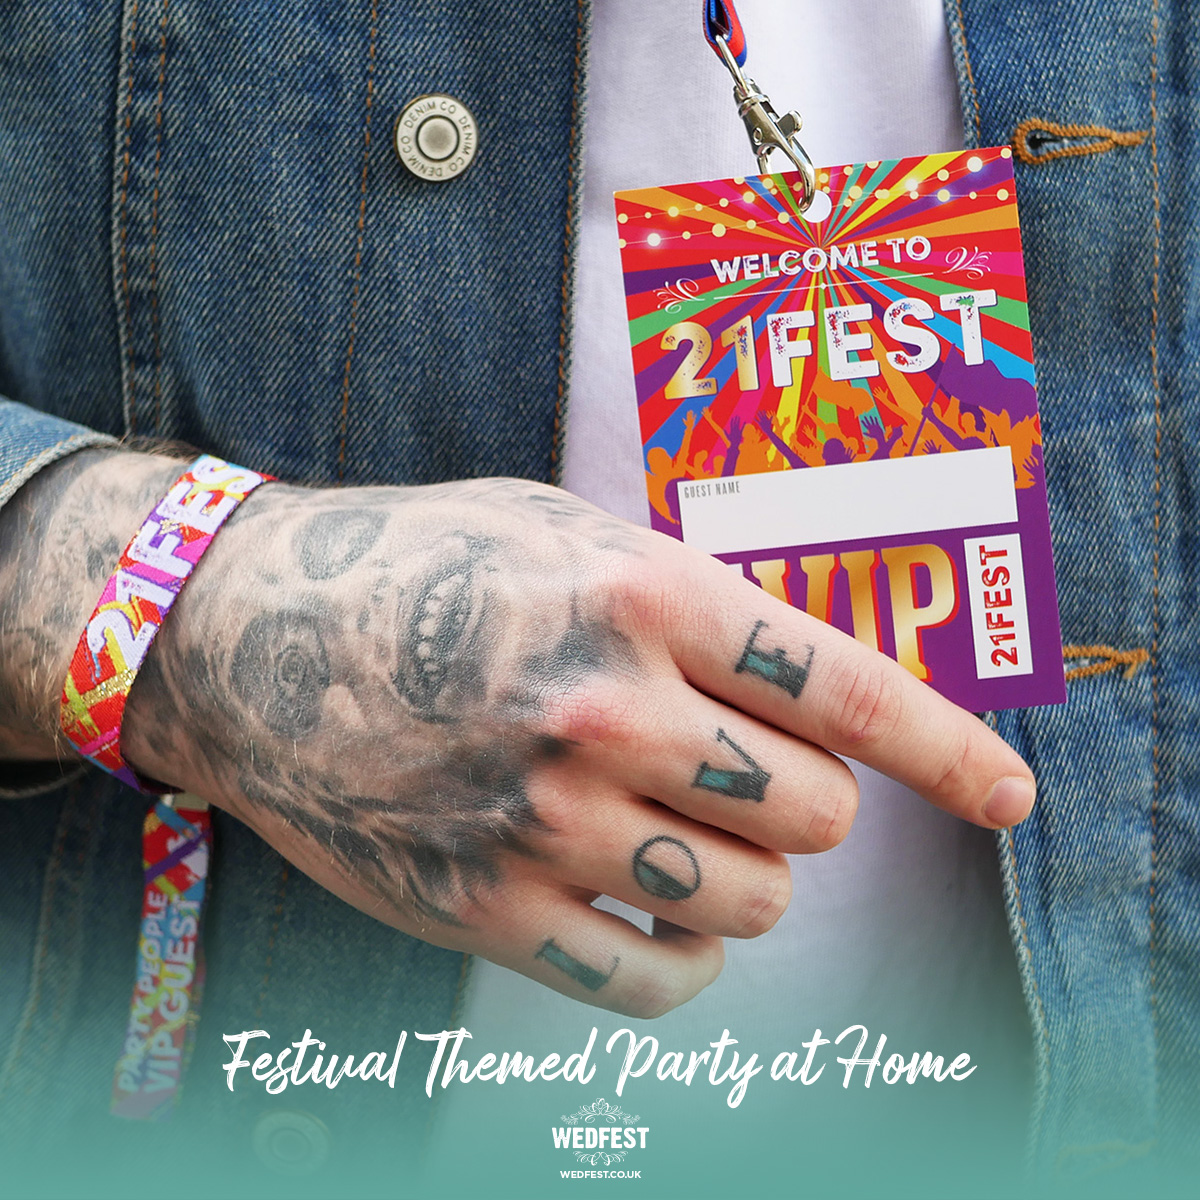 21FEST 21st birthday party festival at home wristbands lanyards favours